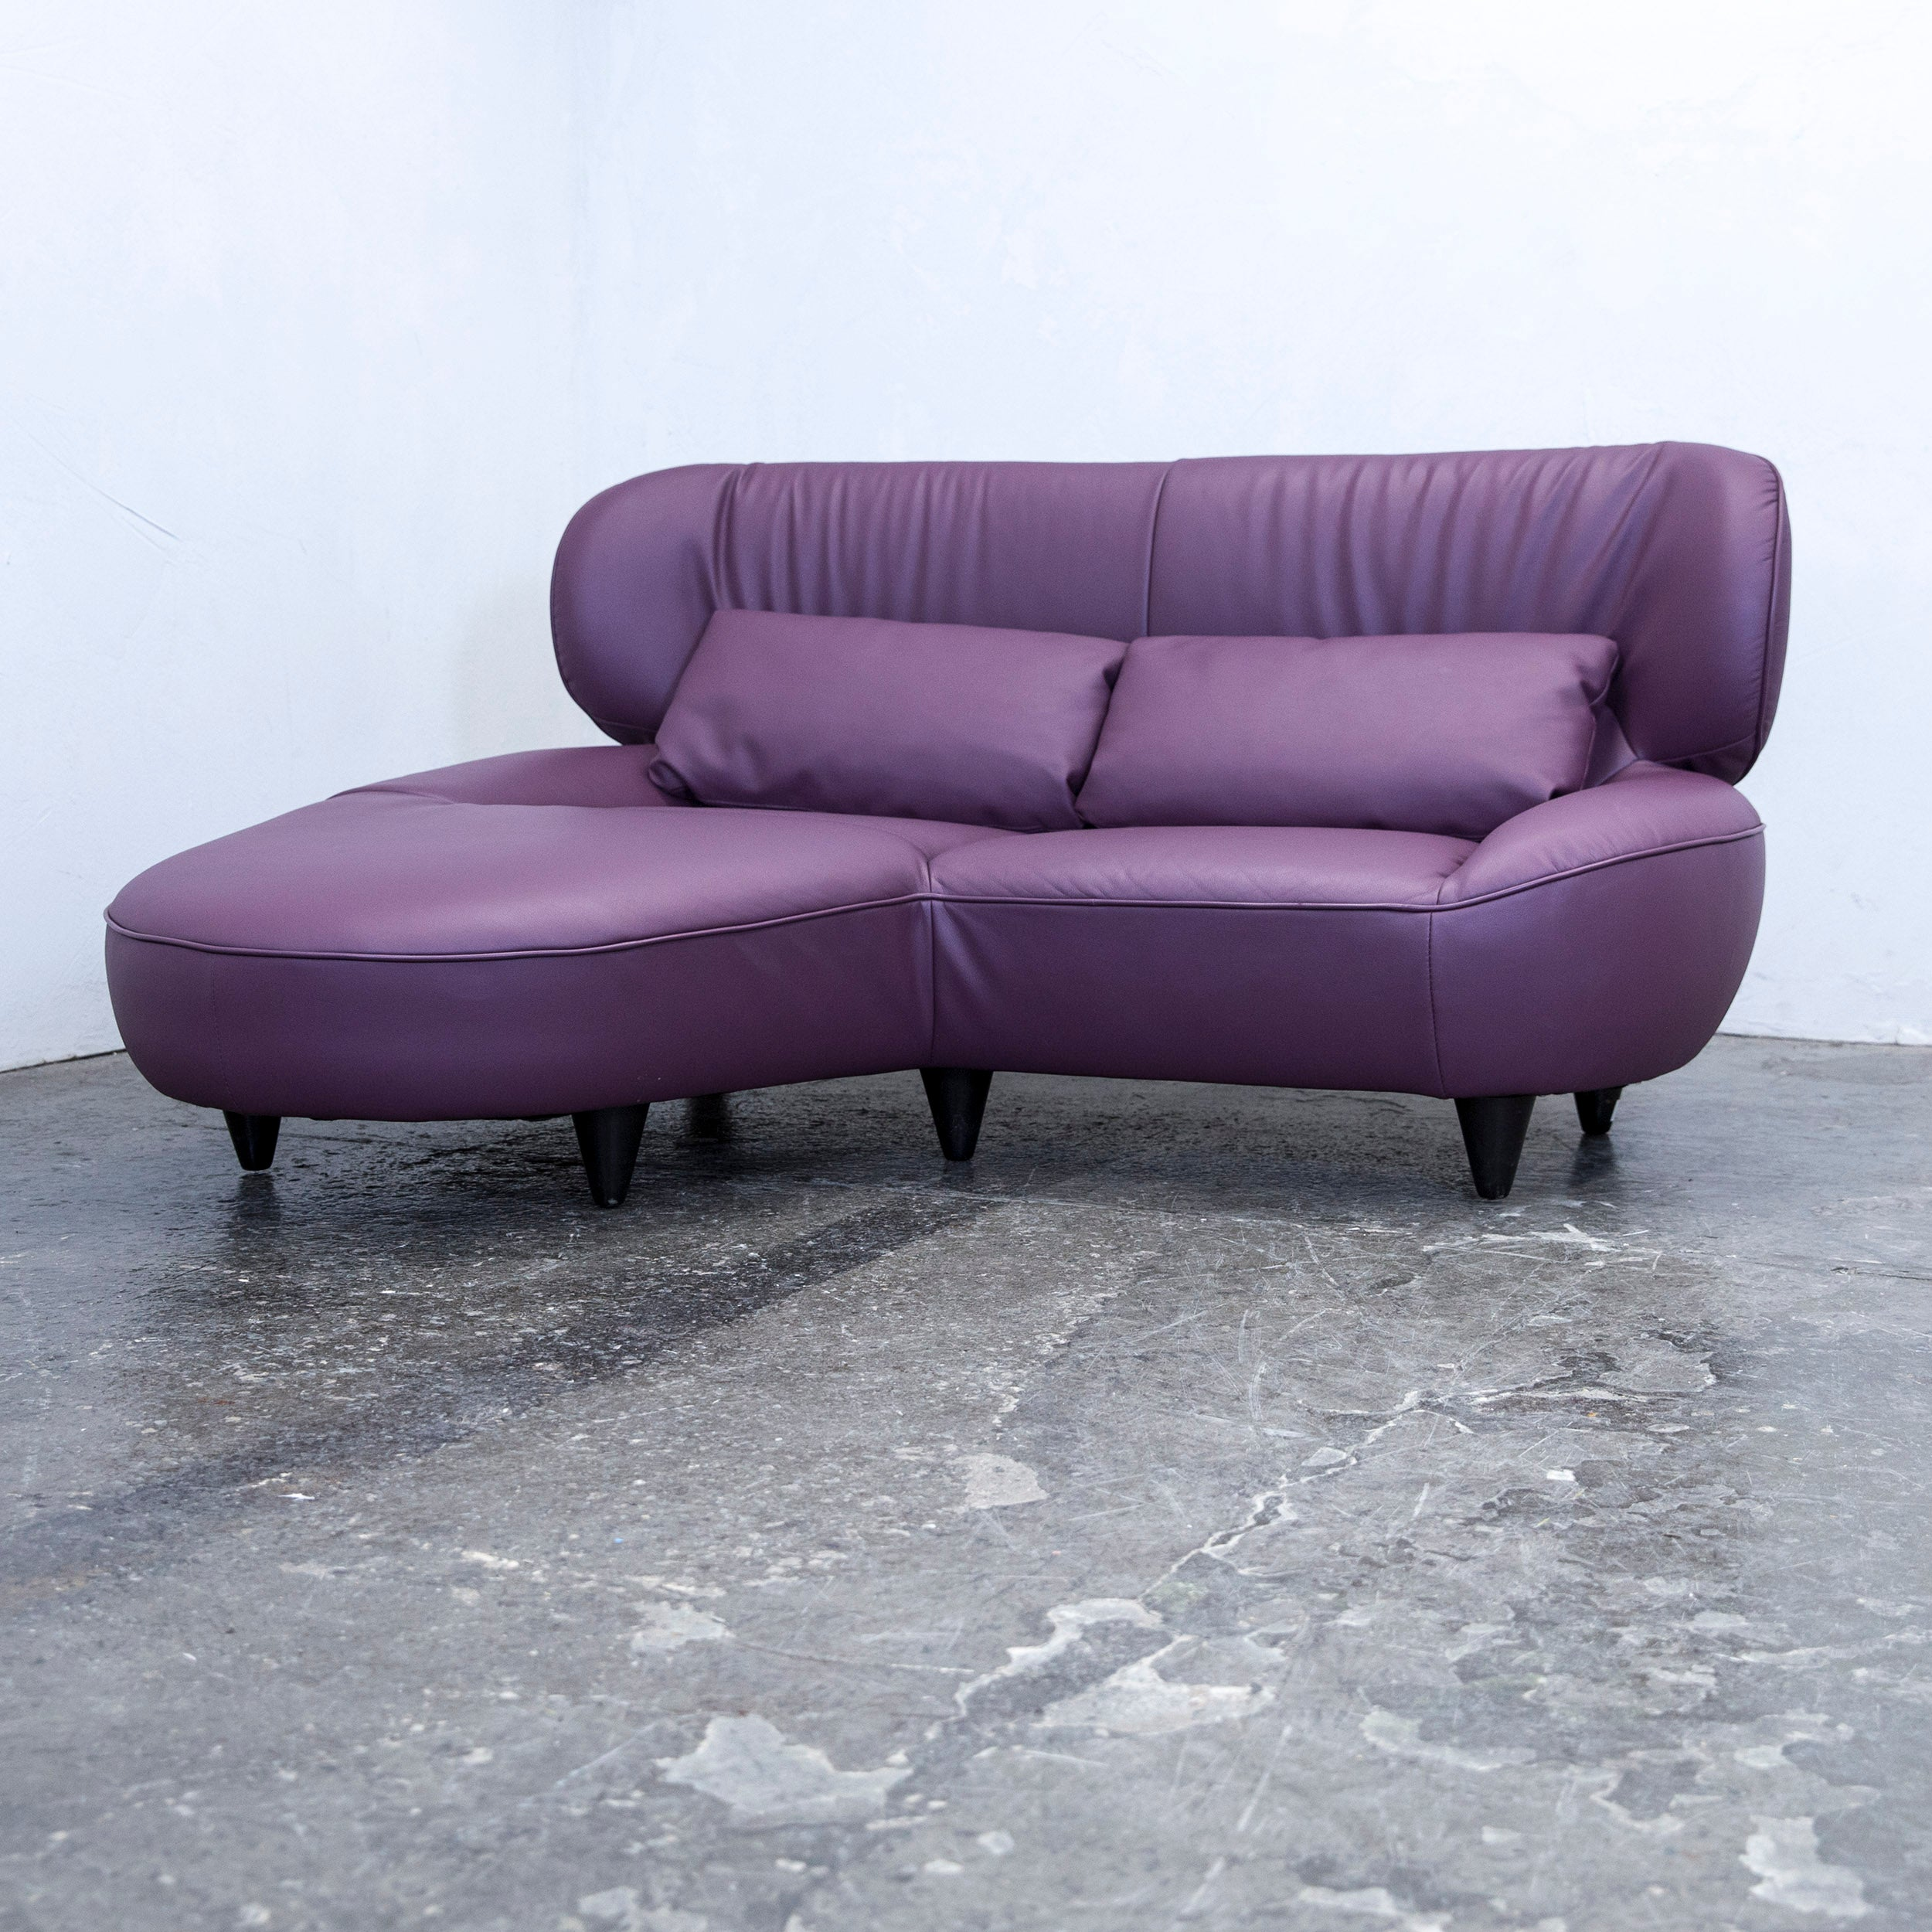 Couch Lila Designer Corner Sofa Set Footstool Lilac Two-seat Couch Modern Faux Leather For Sale At 1stdibs